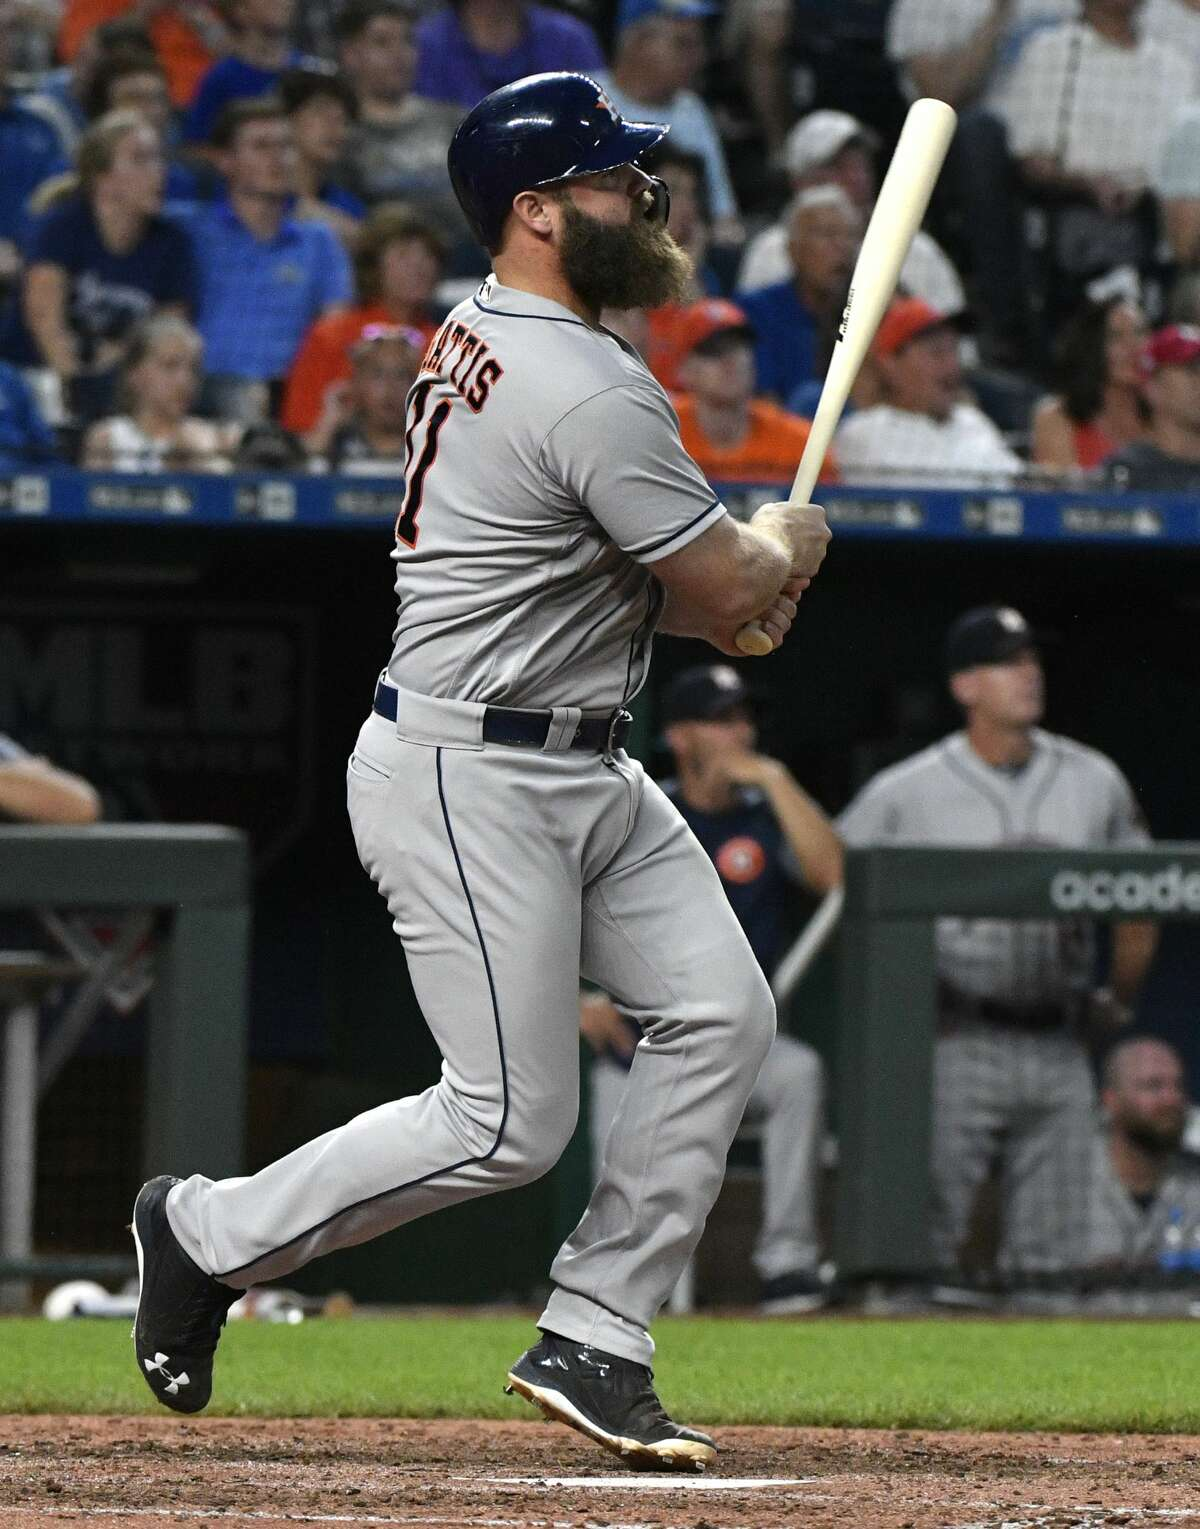 KANSAS CITY, MO - JUNE 15: Evan Gattis #11 of the Houston Astros hits a grand slam in the sixth inning against the Kansas City Royals at Kauffman Stadium on June 15, 2018 in Kansas City, Missouri. (Photo by Ed Zurga/Getty Images)